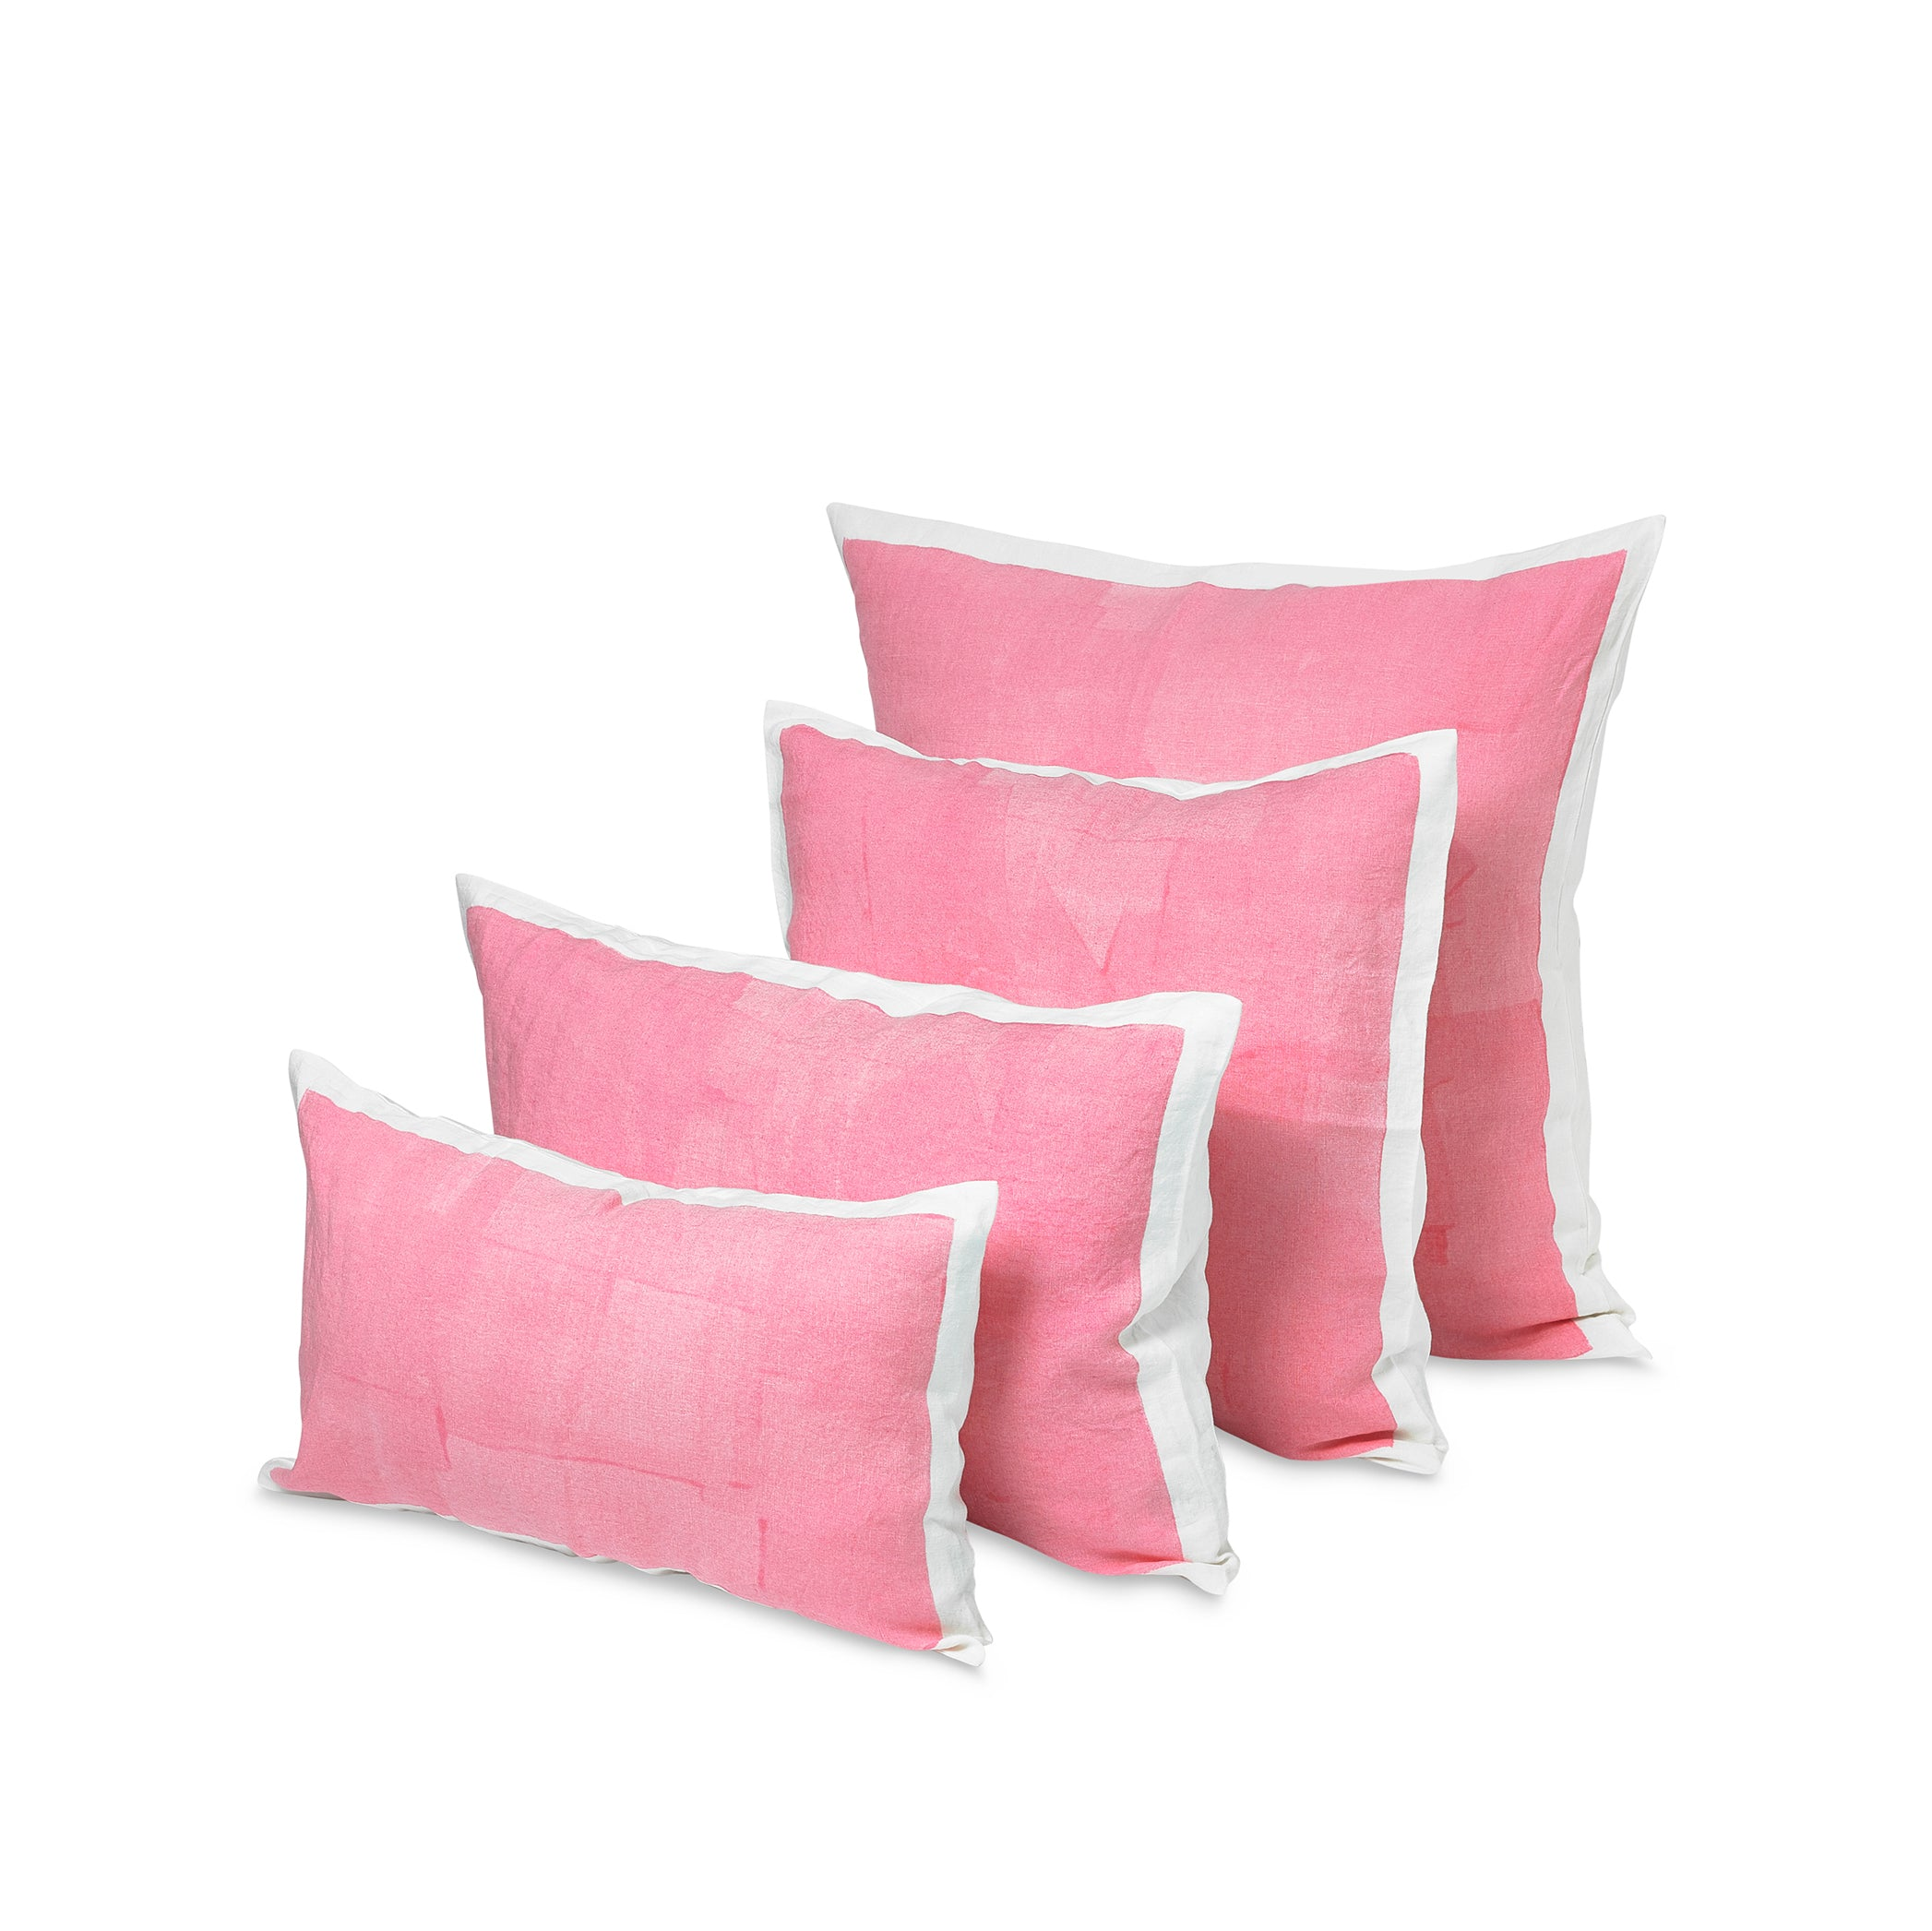 Hand Painted Linen Cushion Cover in Rose Pink, 60cm x 60cm